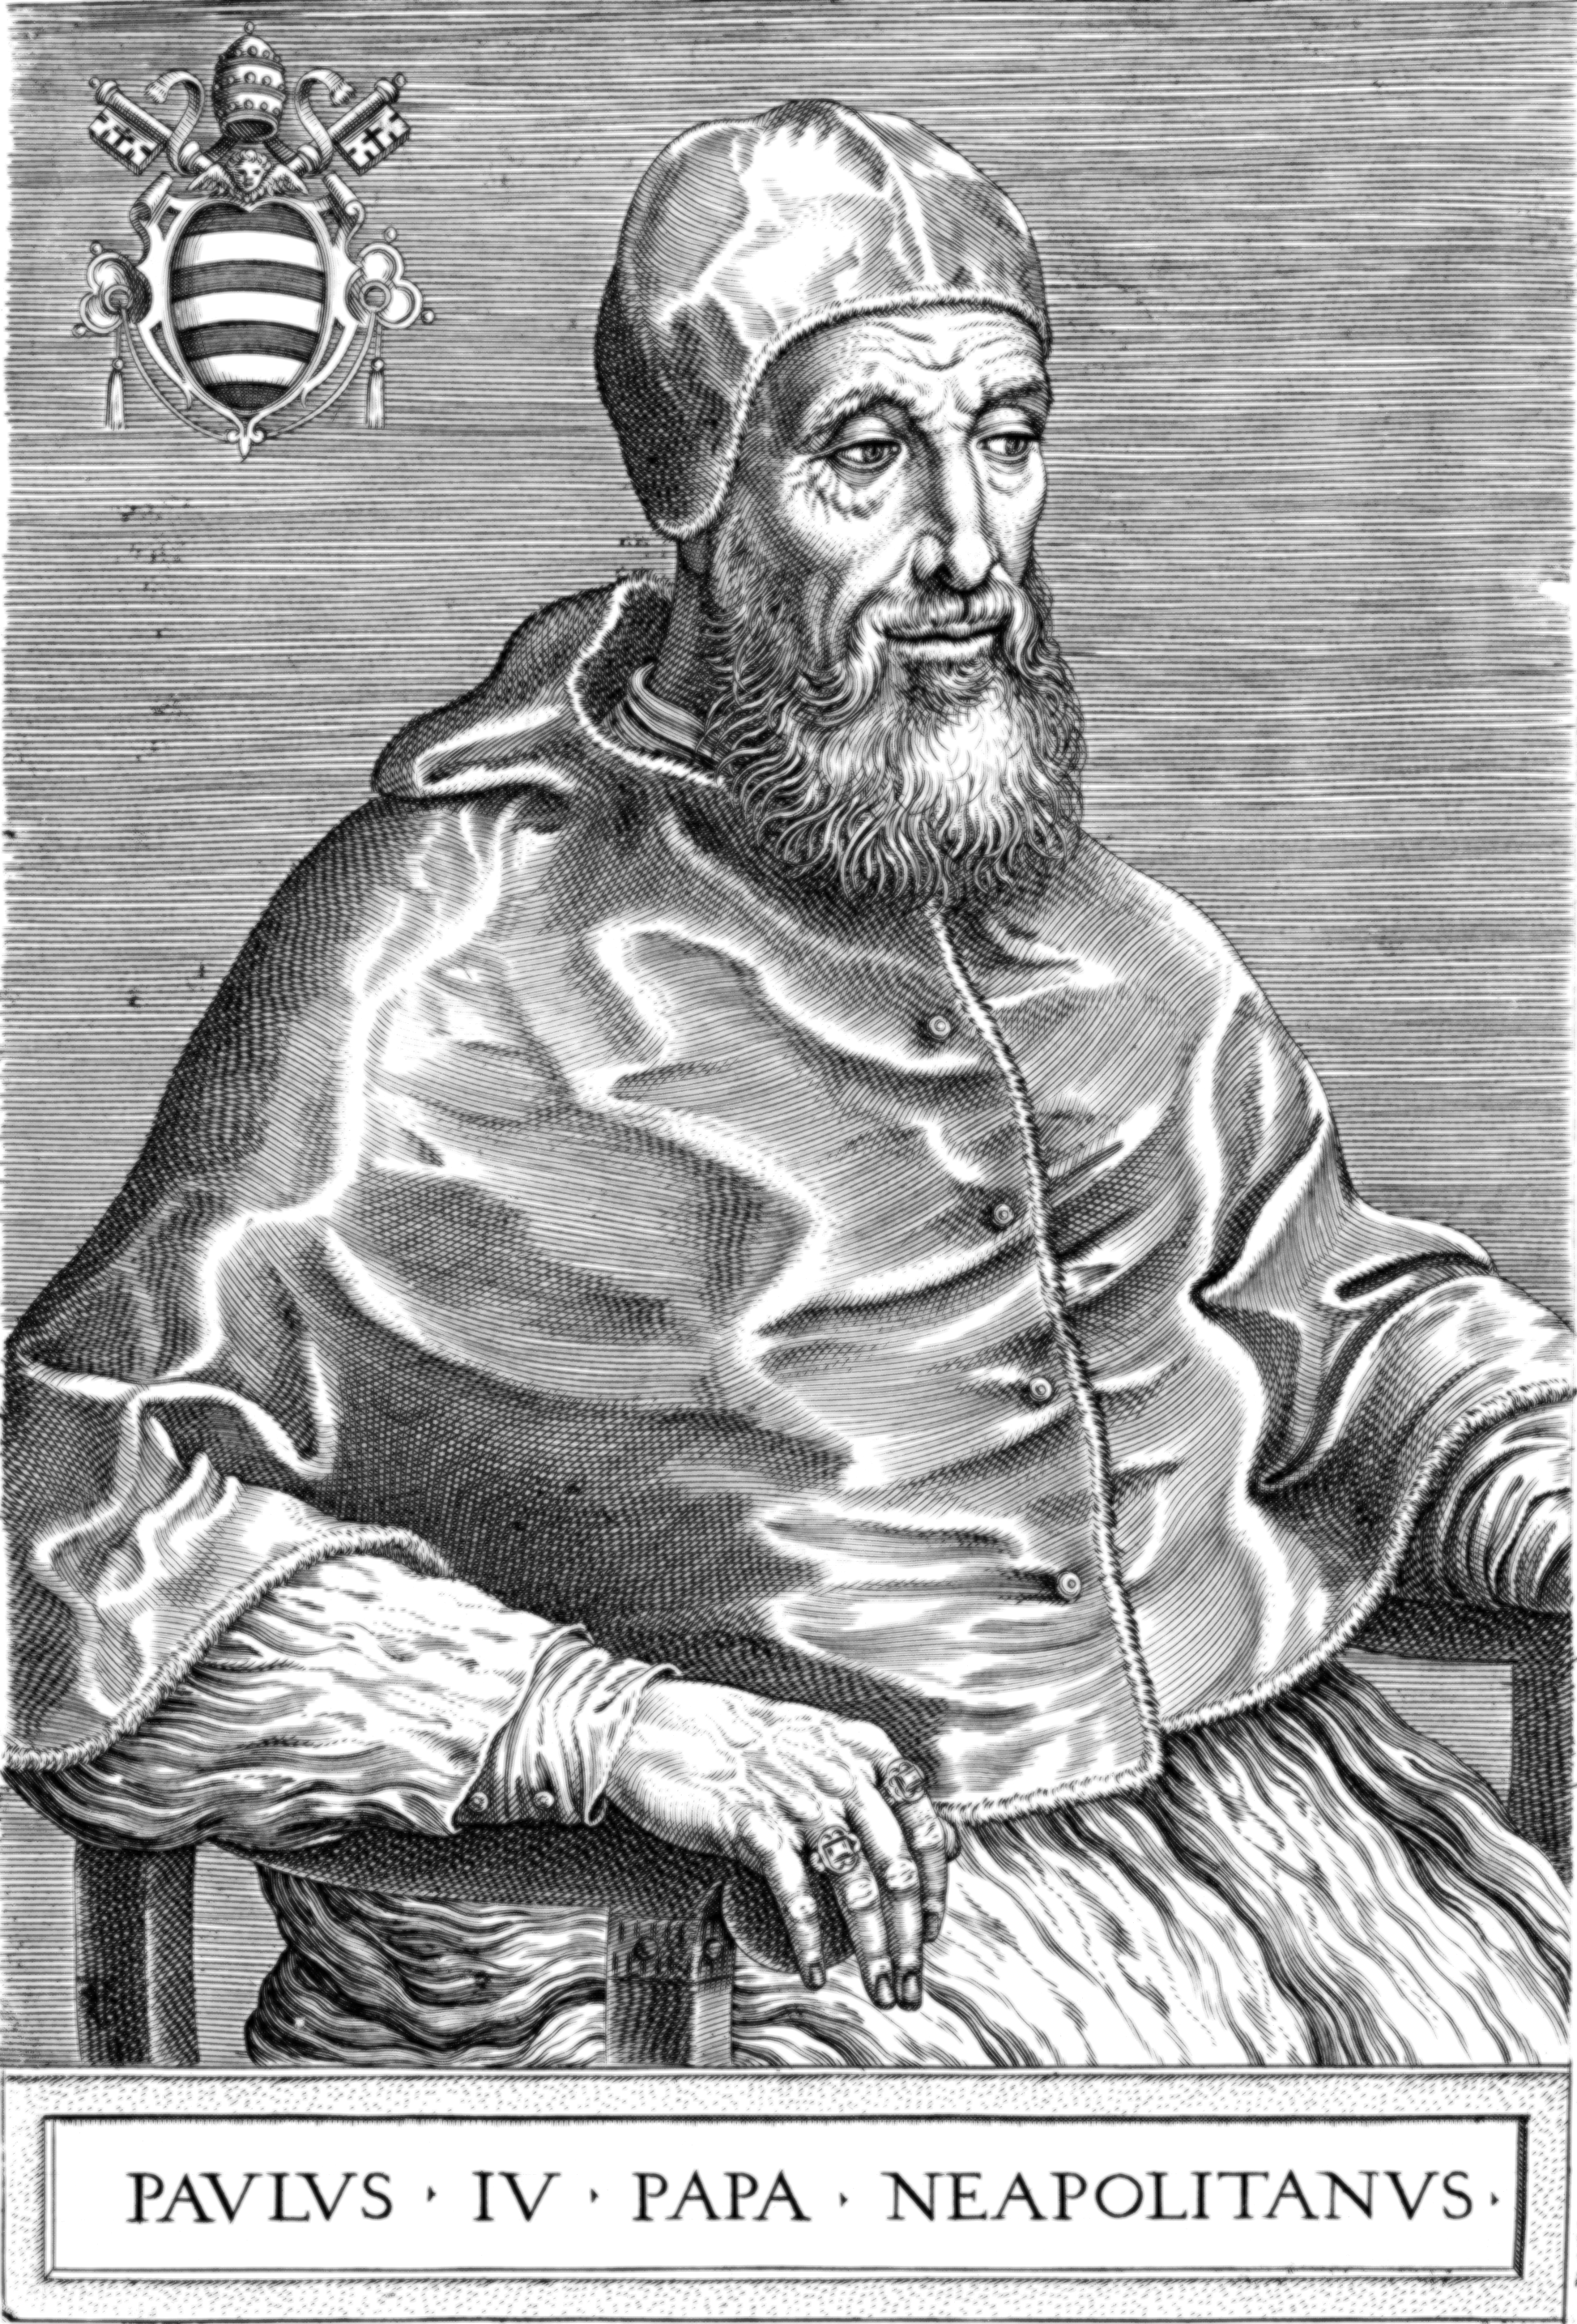 https://upload.wikimedia.org/wikipedia/commons/2/2b/Pope_Paul_IV.PNG